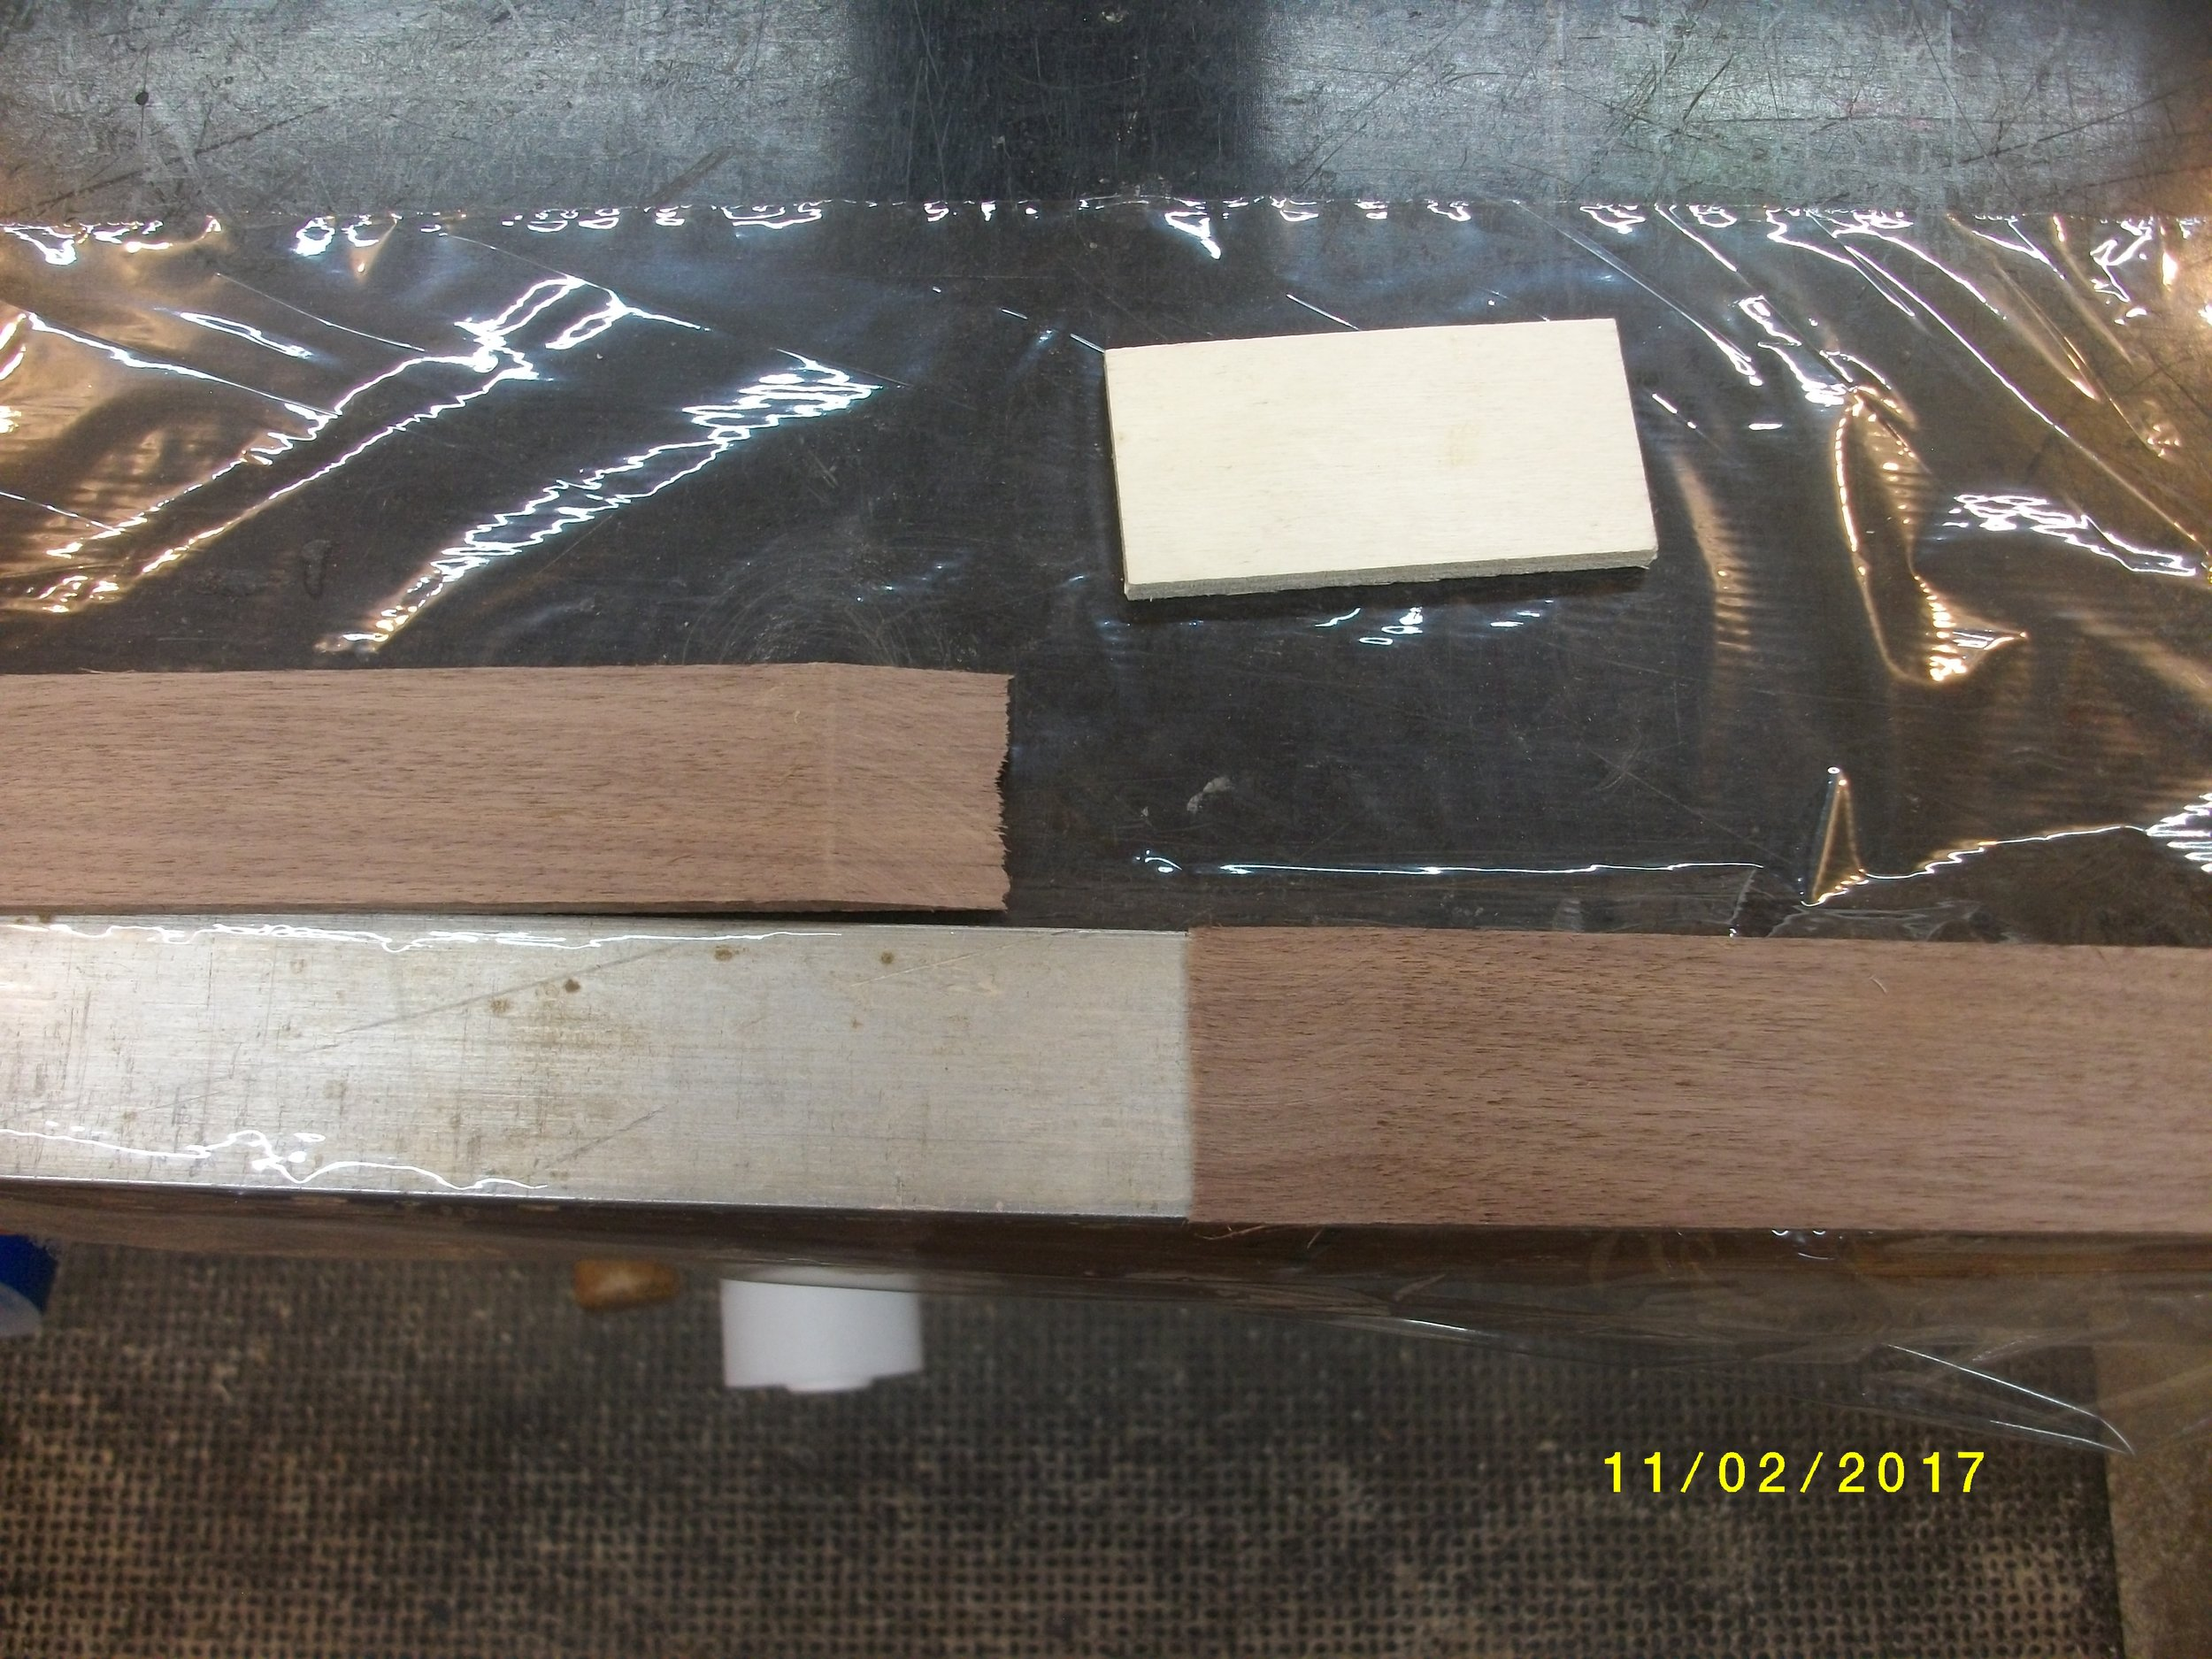 "Now, I have an aluminum bar that is 1.5"" wide, I lay it on the bench edge and lay one lam on it. Clamp that lam at the end away from the glue joint so you only have the other lam and the glue joint to worry about. You need to keep the lam straight when glued so it fits the bow form.  I lay a sheet of plastic wrap under the glue area, and on top of the straightedge.   I apply superglue to both surfaces and then fold the plastic over the joint ,making sure the joint is flush and the second lam is lined up on straightedge, lay a block of plywood on top and clamp the whole thing to bench. Let dry a minute and do the next lam. Take a sanding block to the joint when the glue is completely dry."